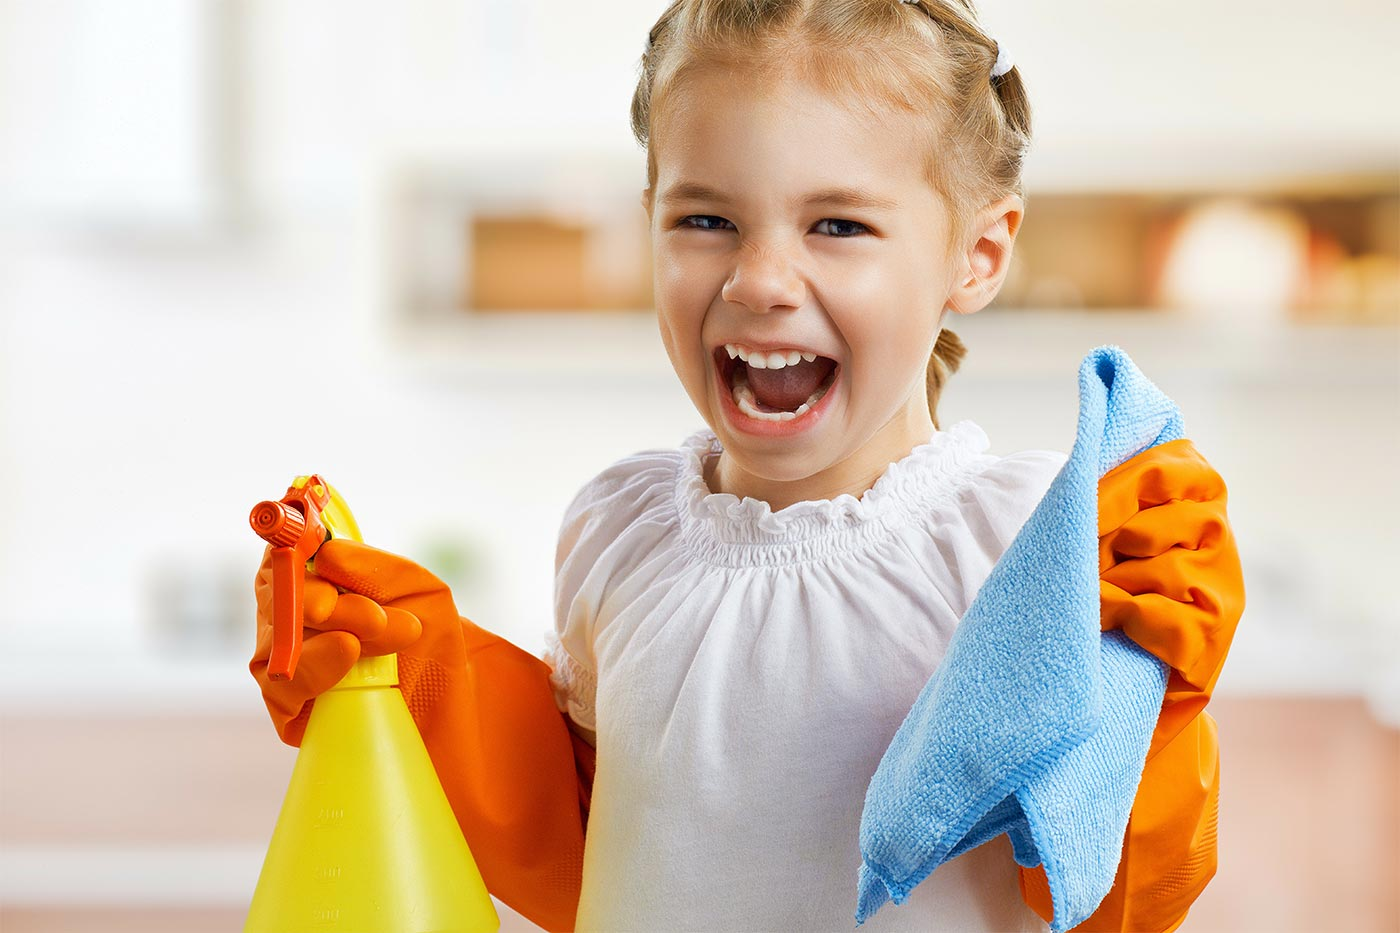 Girl holding a spray bottle and rag, wearing cleaning gloves doing chores